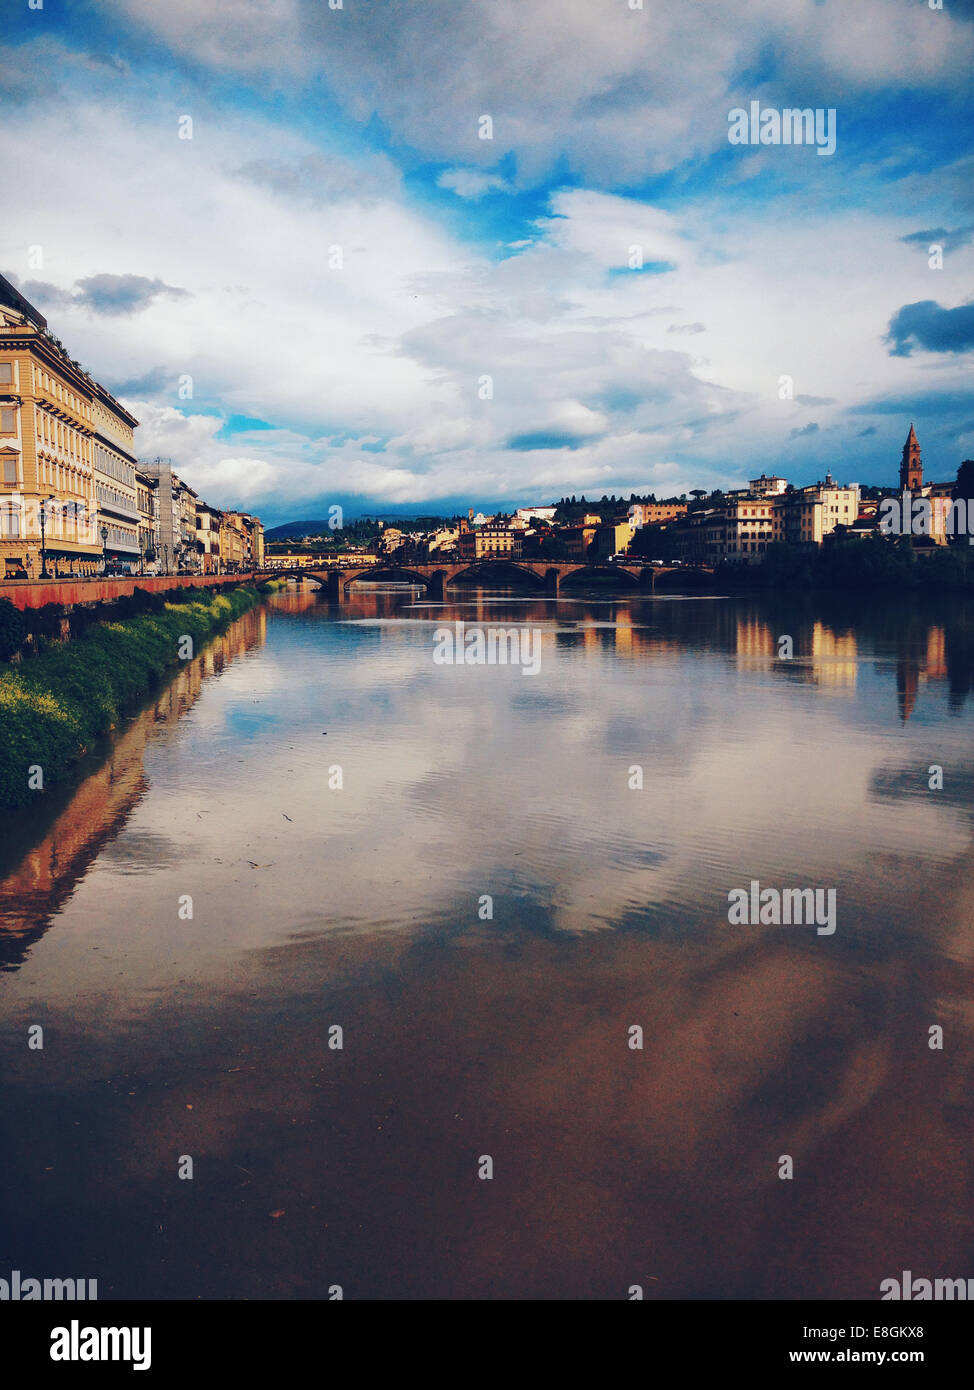 Italy, Tuscany, Florence, view from Vespucci bridge - Stock Image